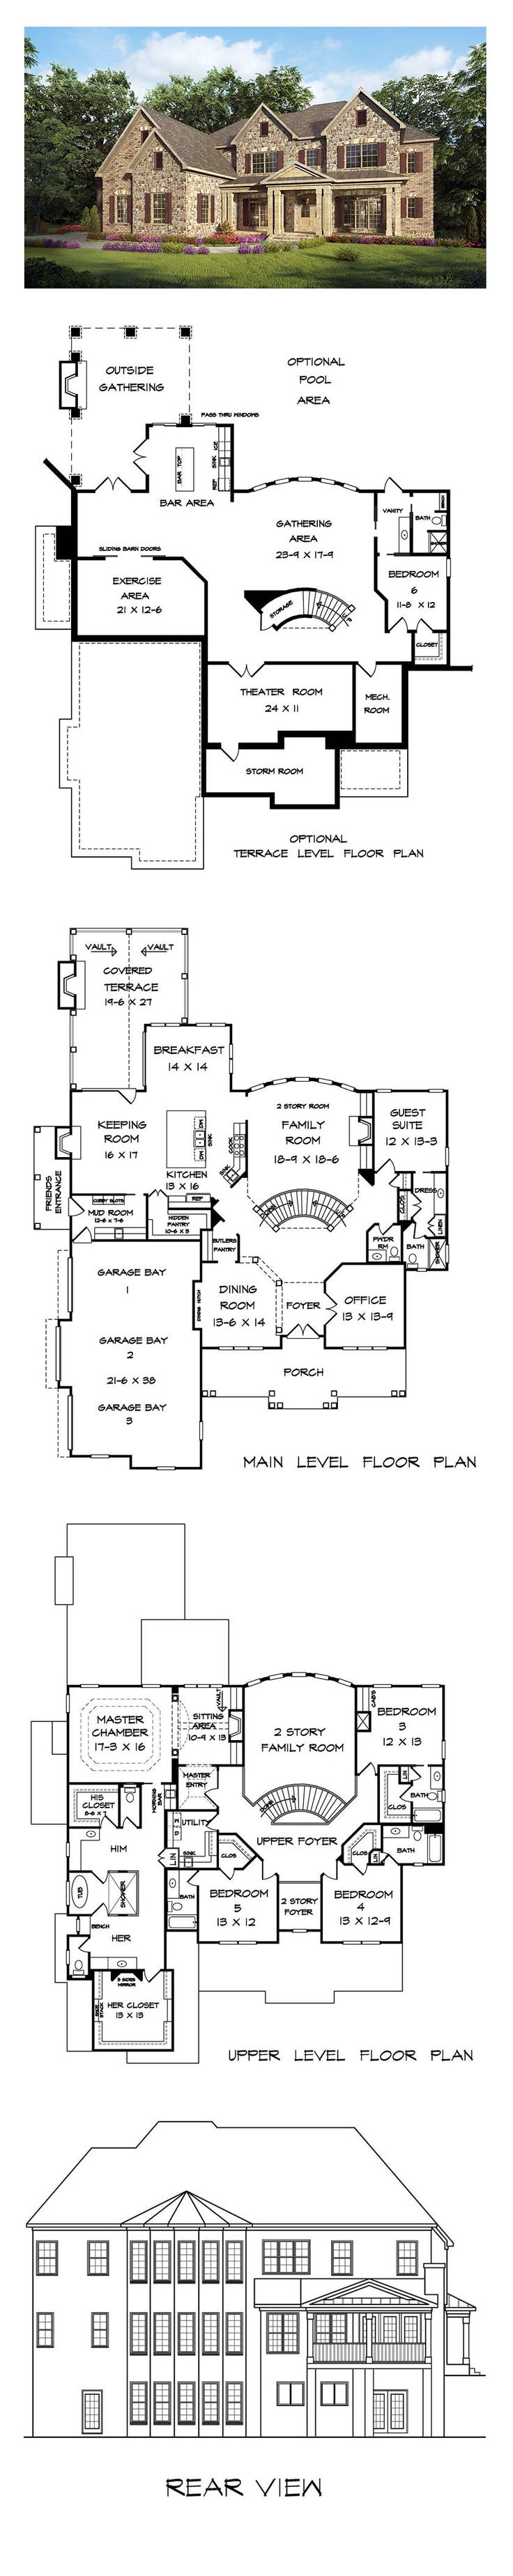 best 25+ dream house plans ideas on pinterest